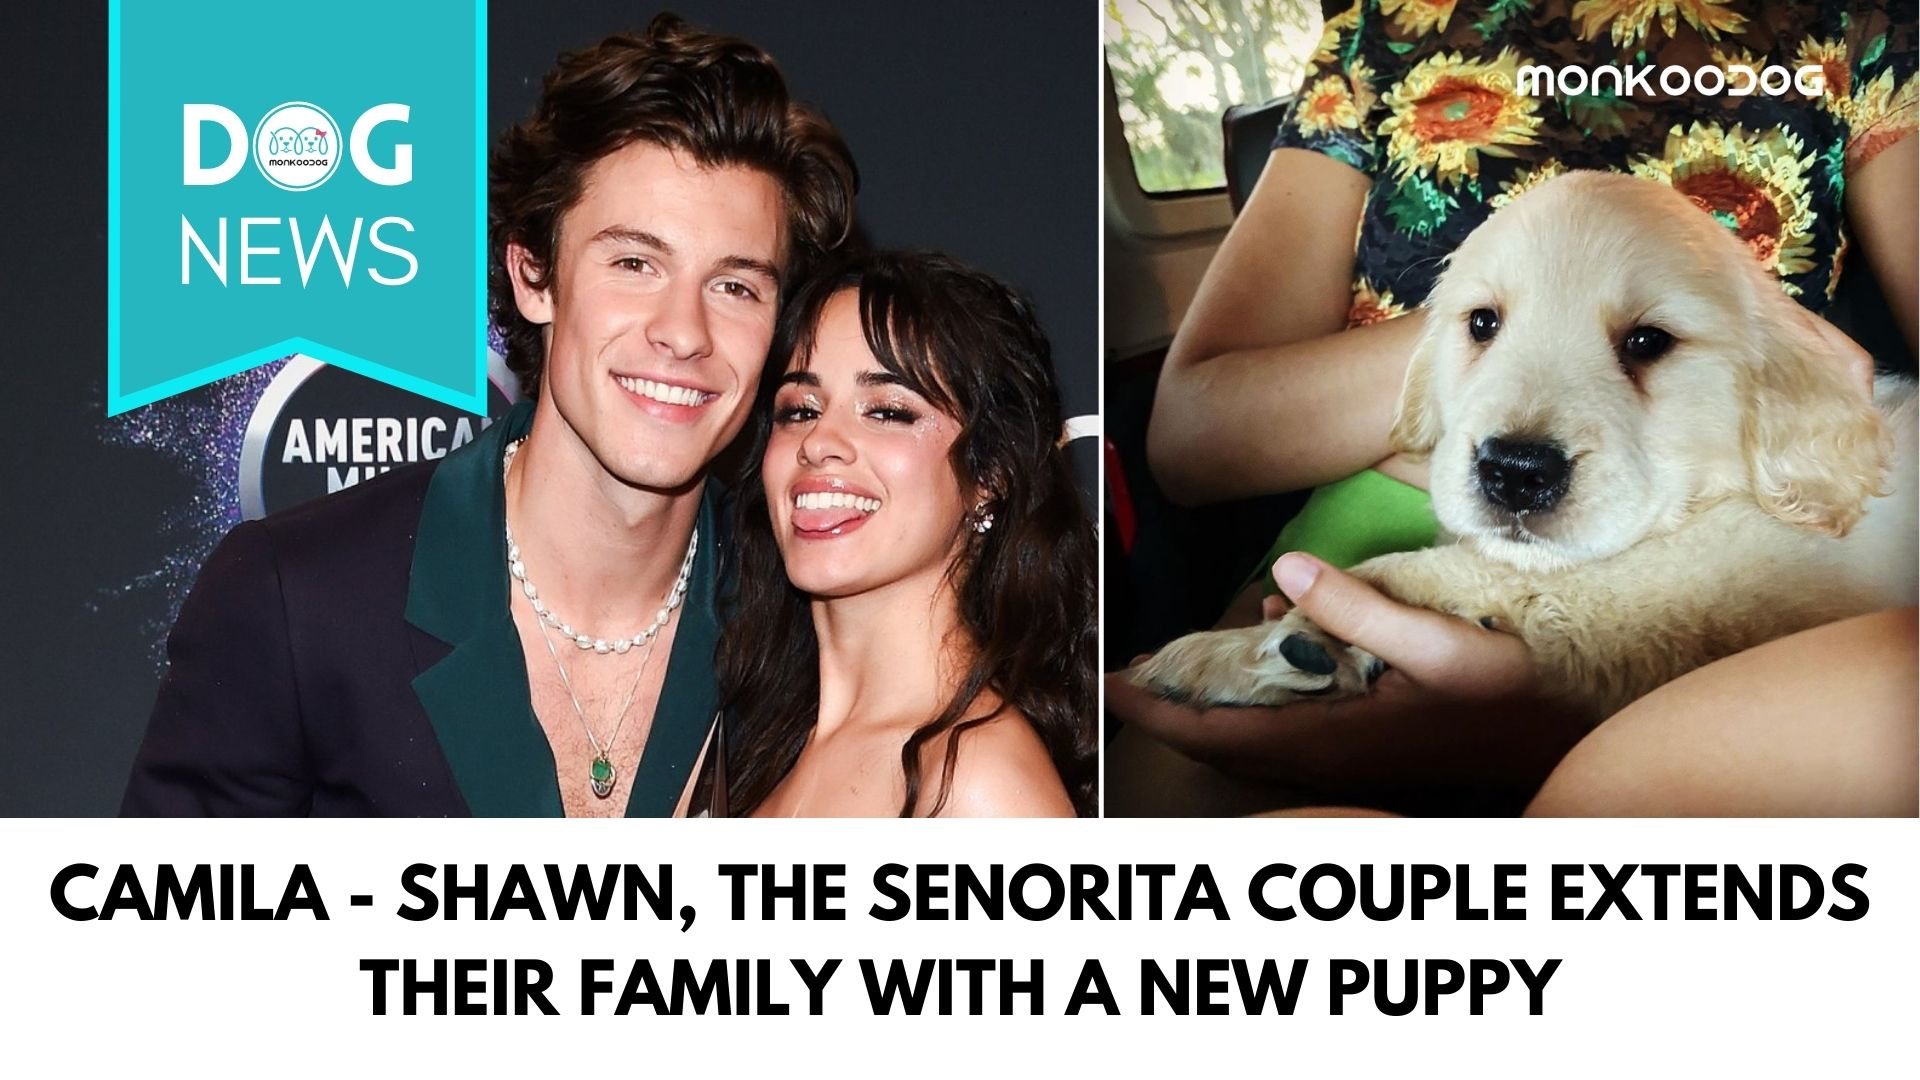 Camila - Shawn, the Senorita Couple extends their family with a new puppy